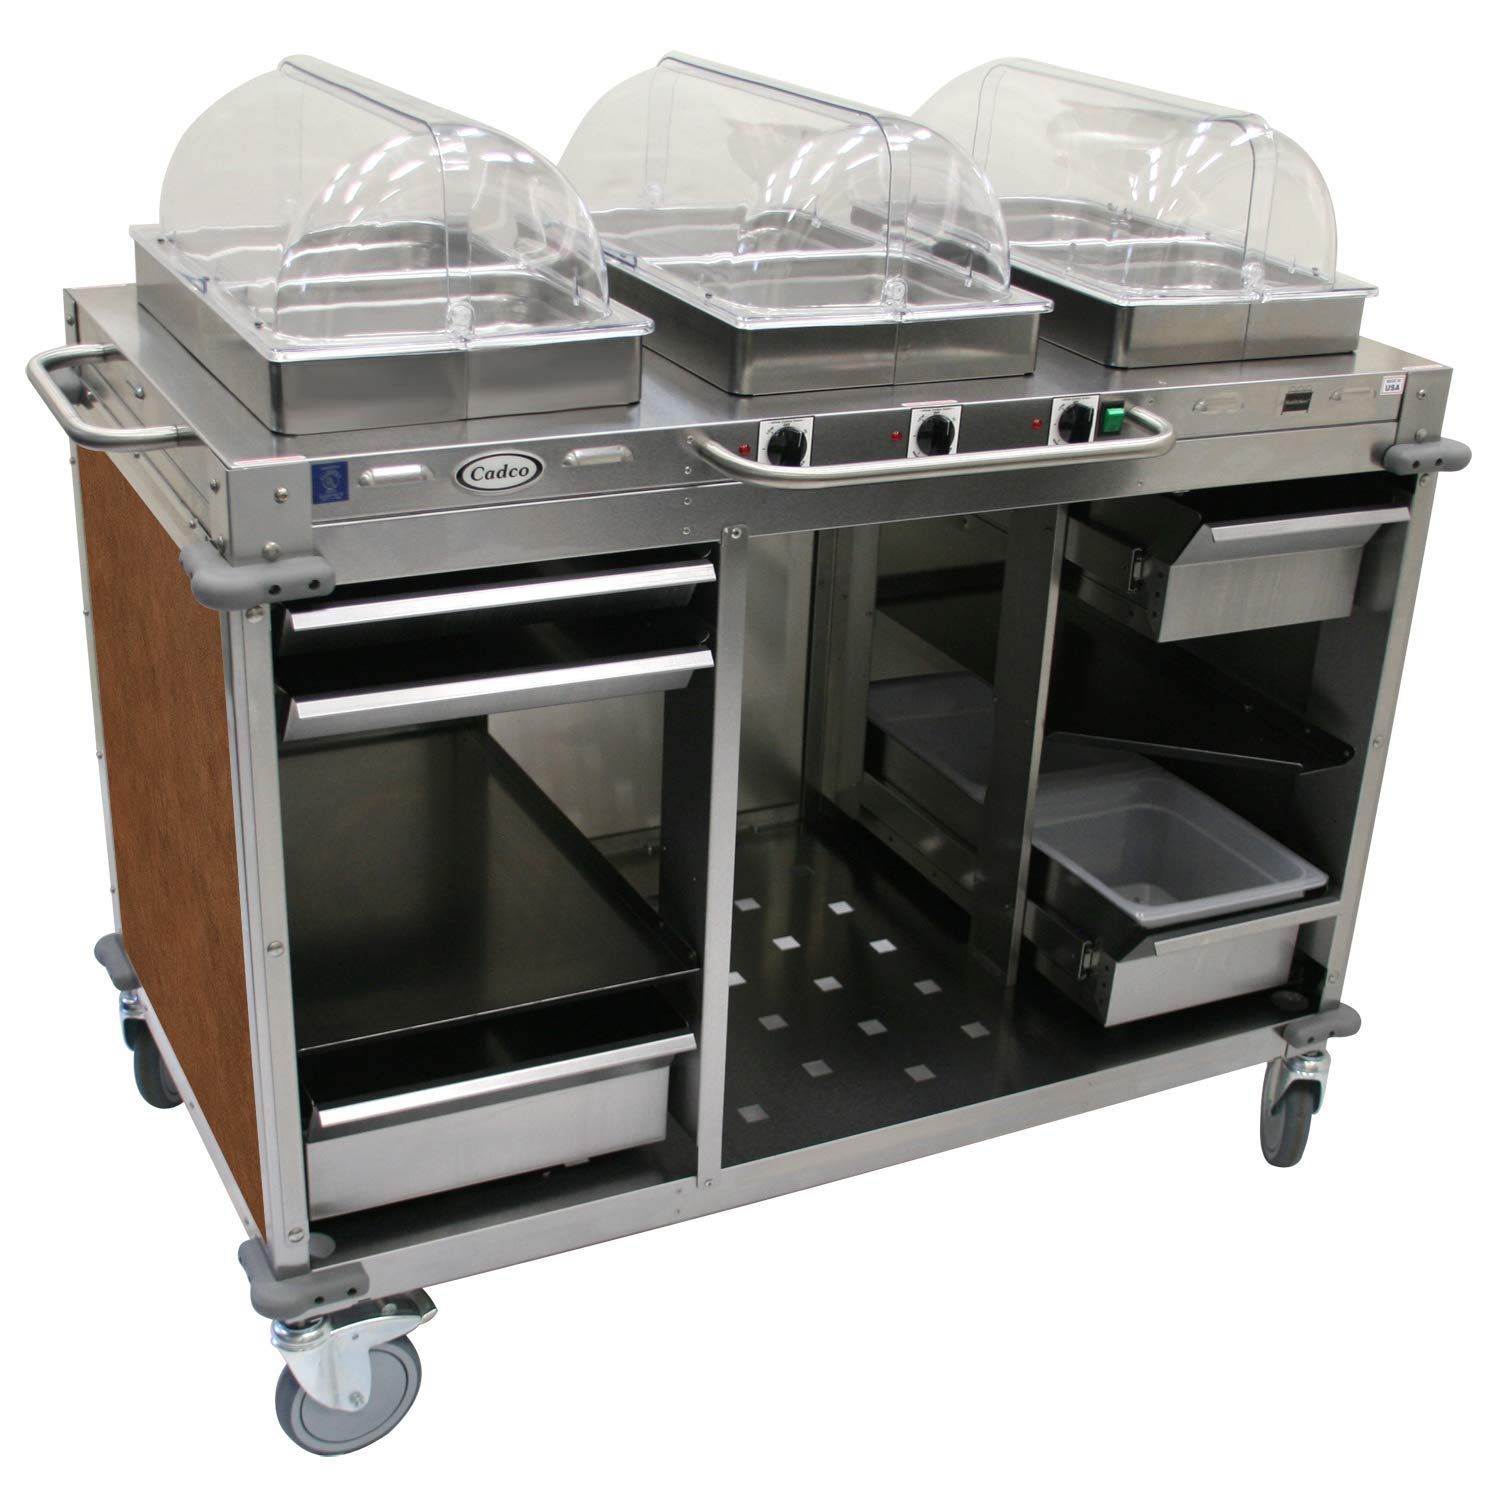 "Mobile Hot Buffet Cart Size: 49"" H x 55.5"" W x 28.75"" D, Color: Flame Soapstone Red"